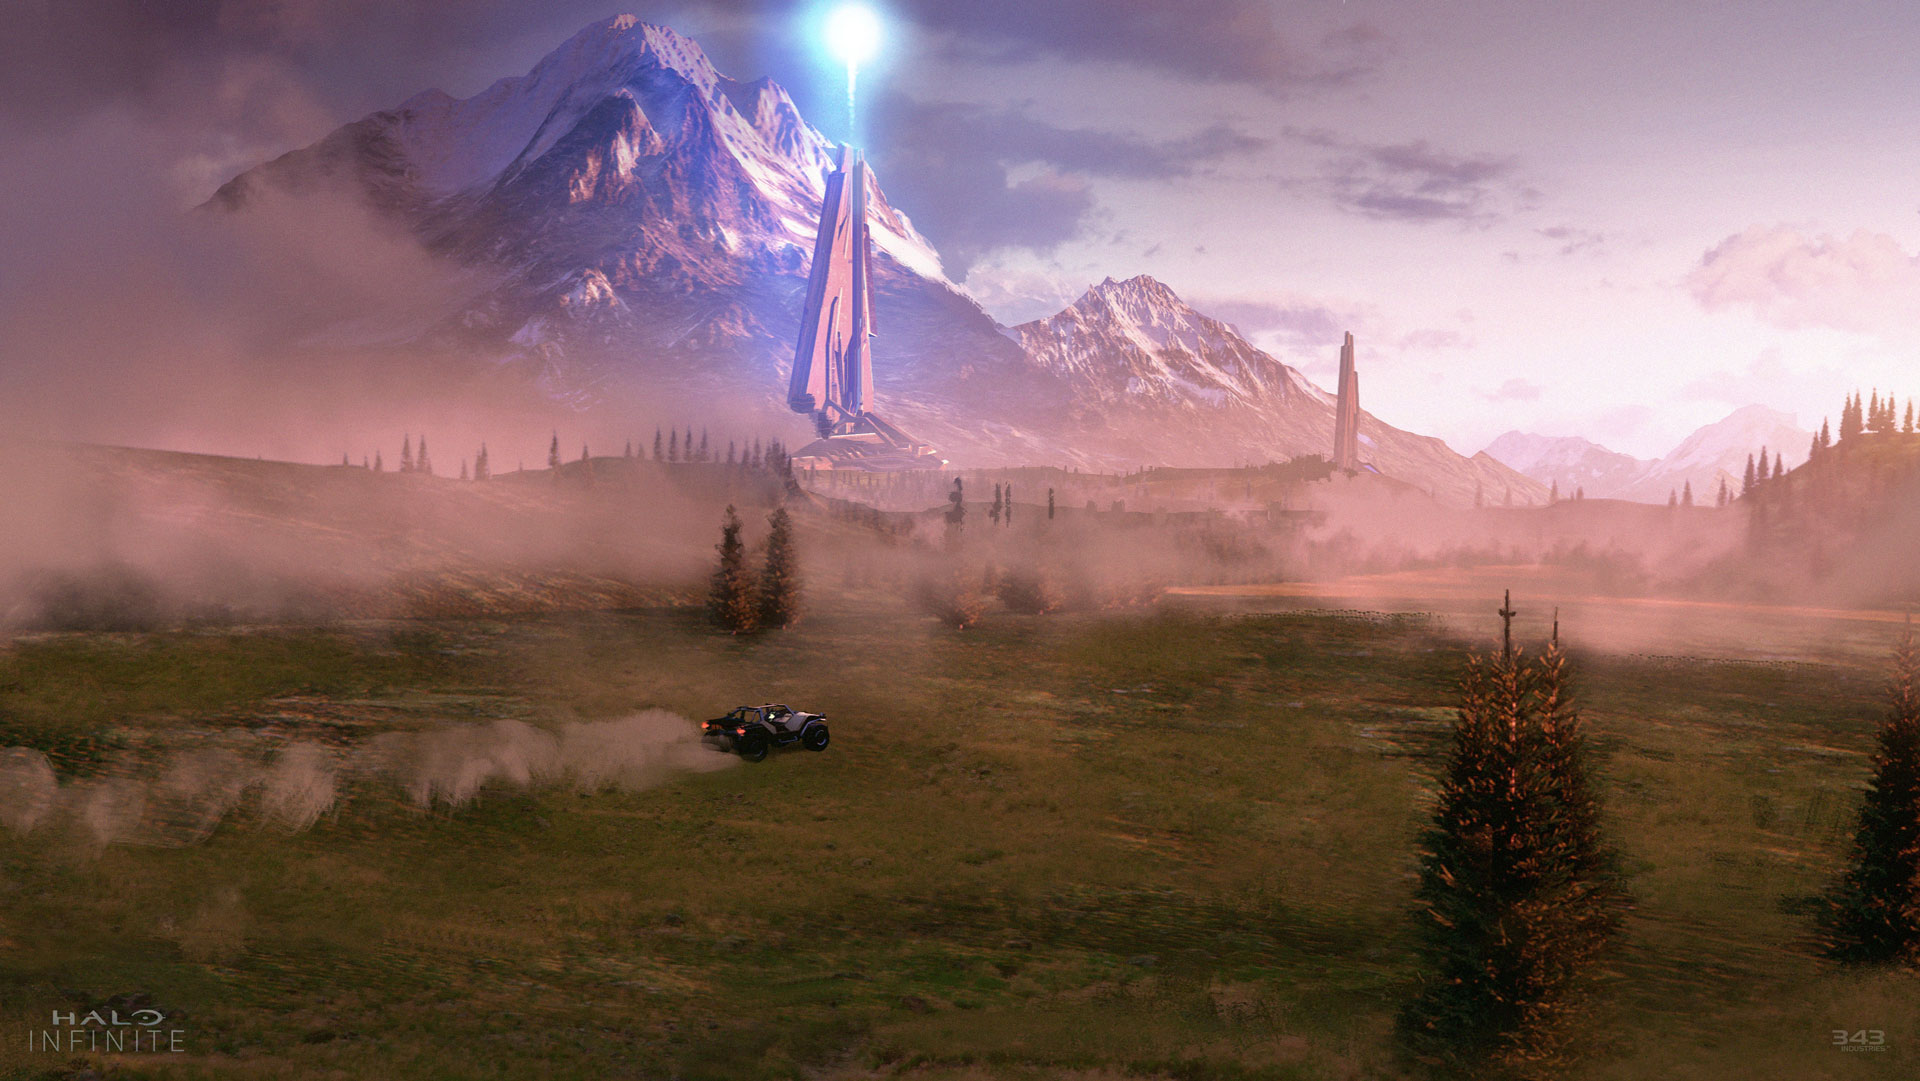 343 Industries Reveal Halo Infinite Artwork And They Look